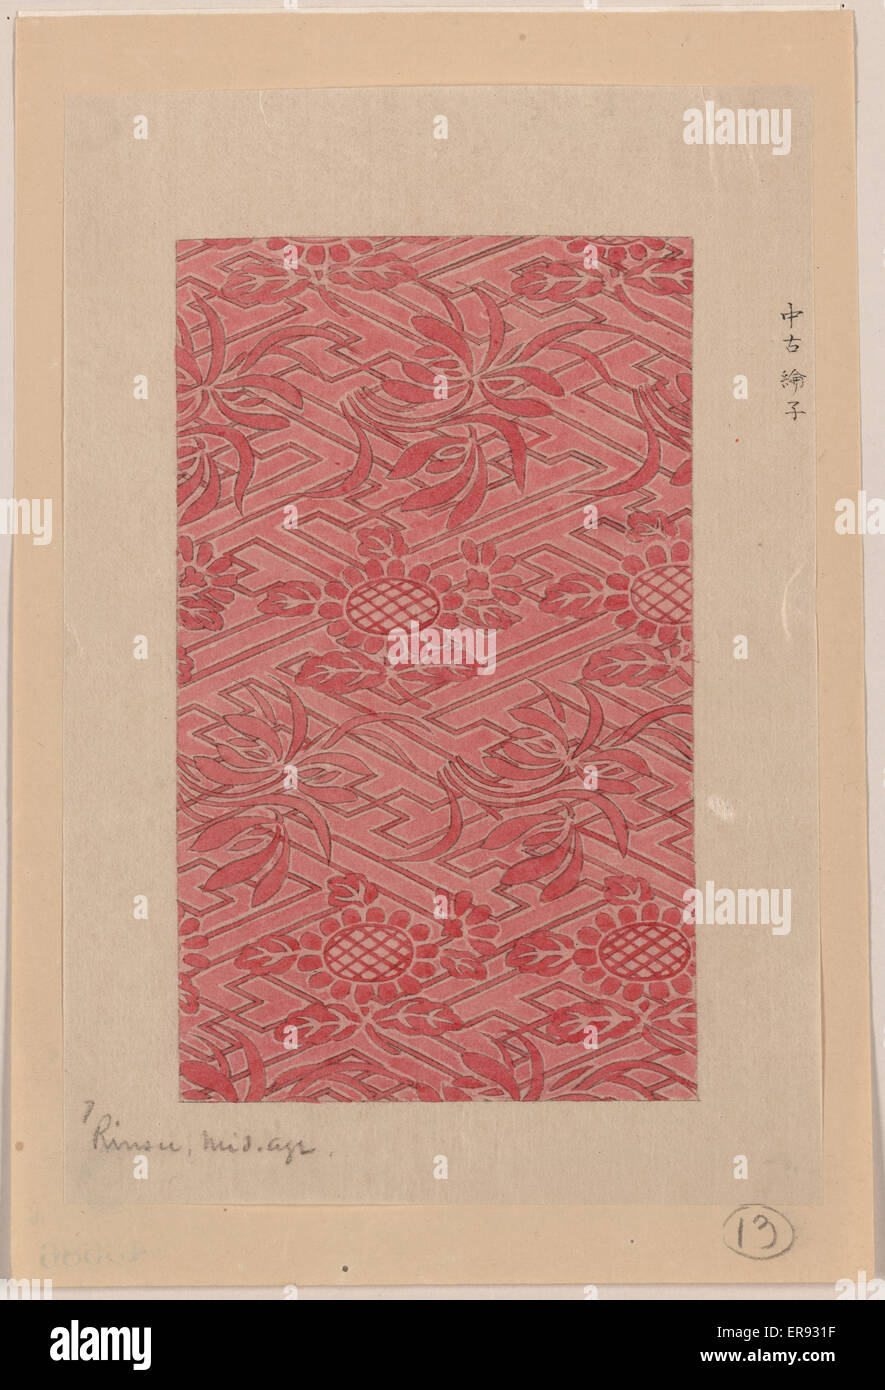 Rinzu (figured satin). Drawing shows stylized floral designs for kimonos. Date between ca. 1750 and 1900. - Stock Image